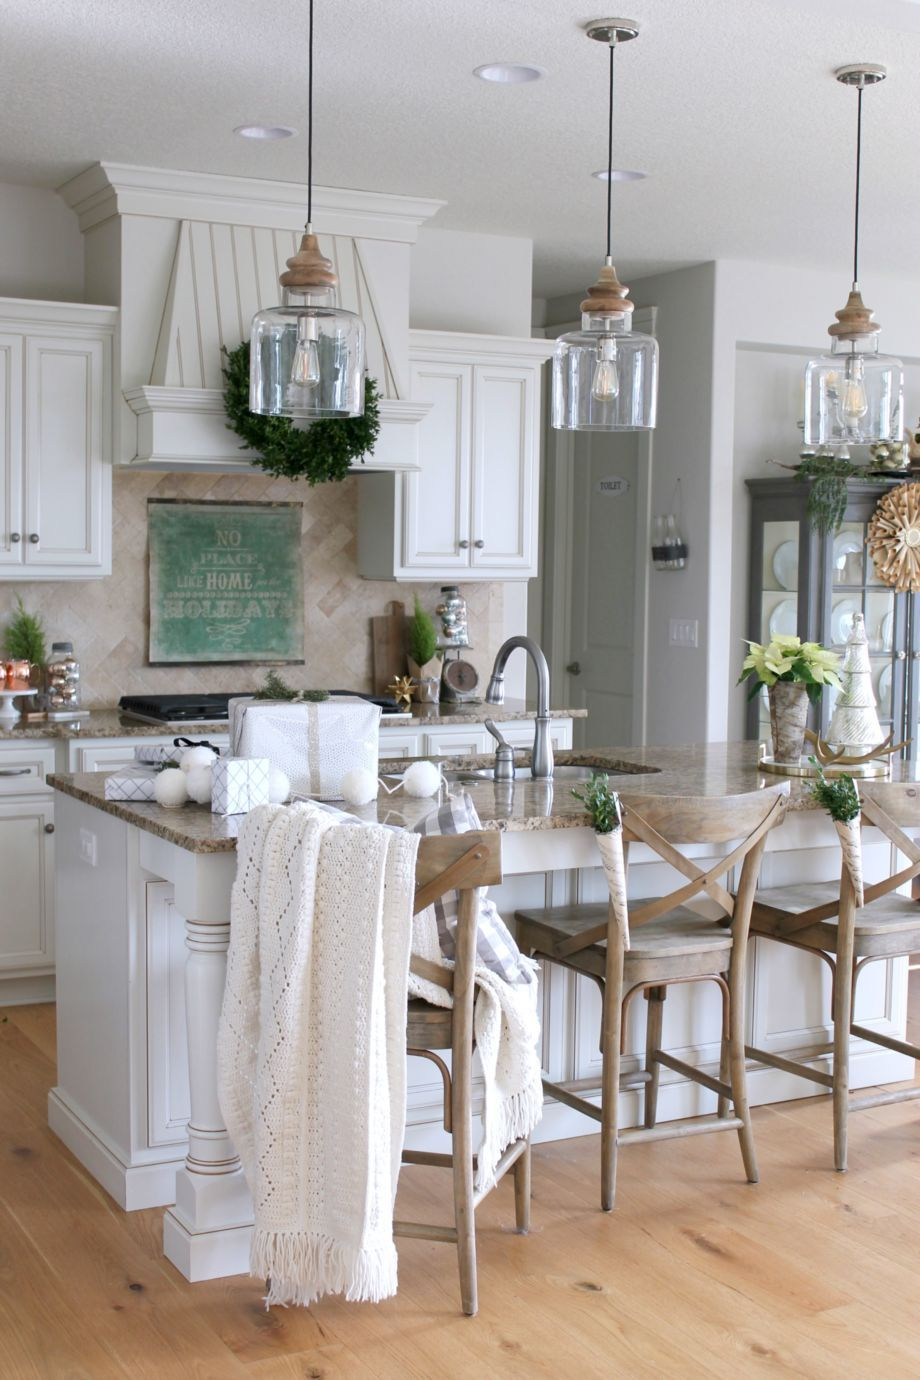 Superb Awesome 80 Adorable Shabby Chic Kitchen Design Ideas